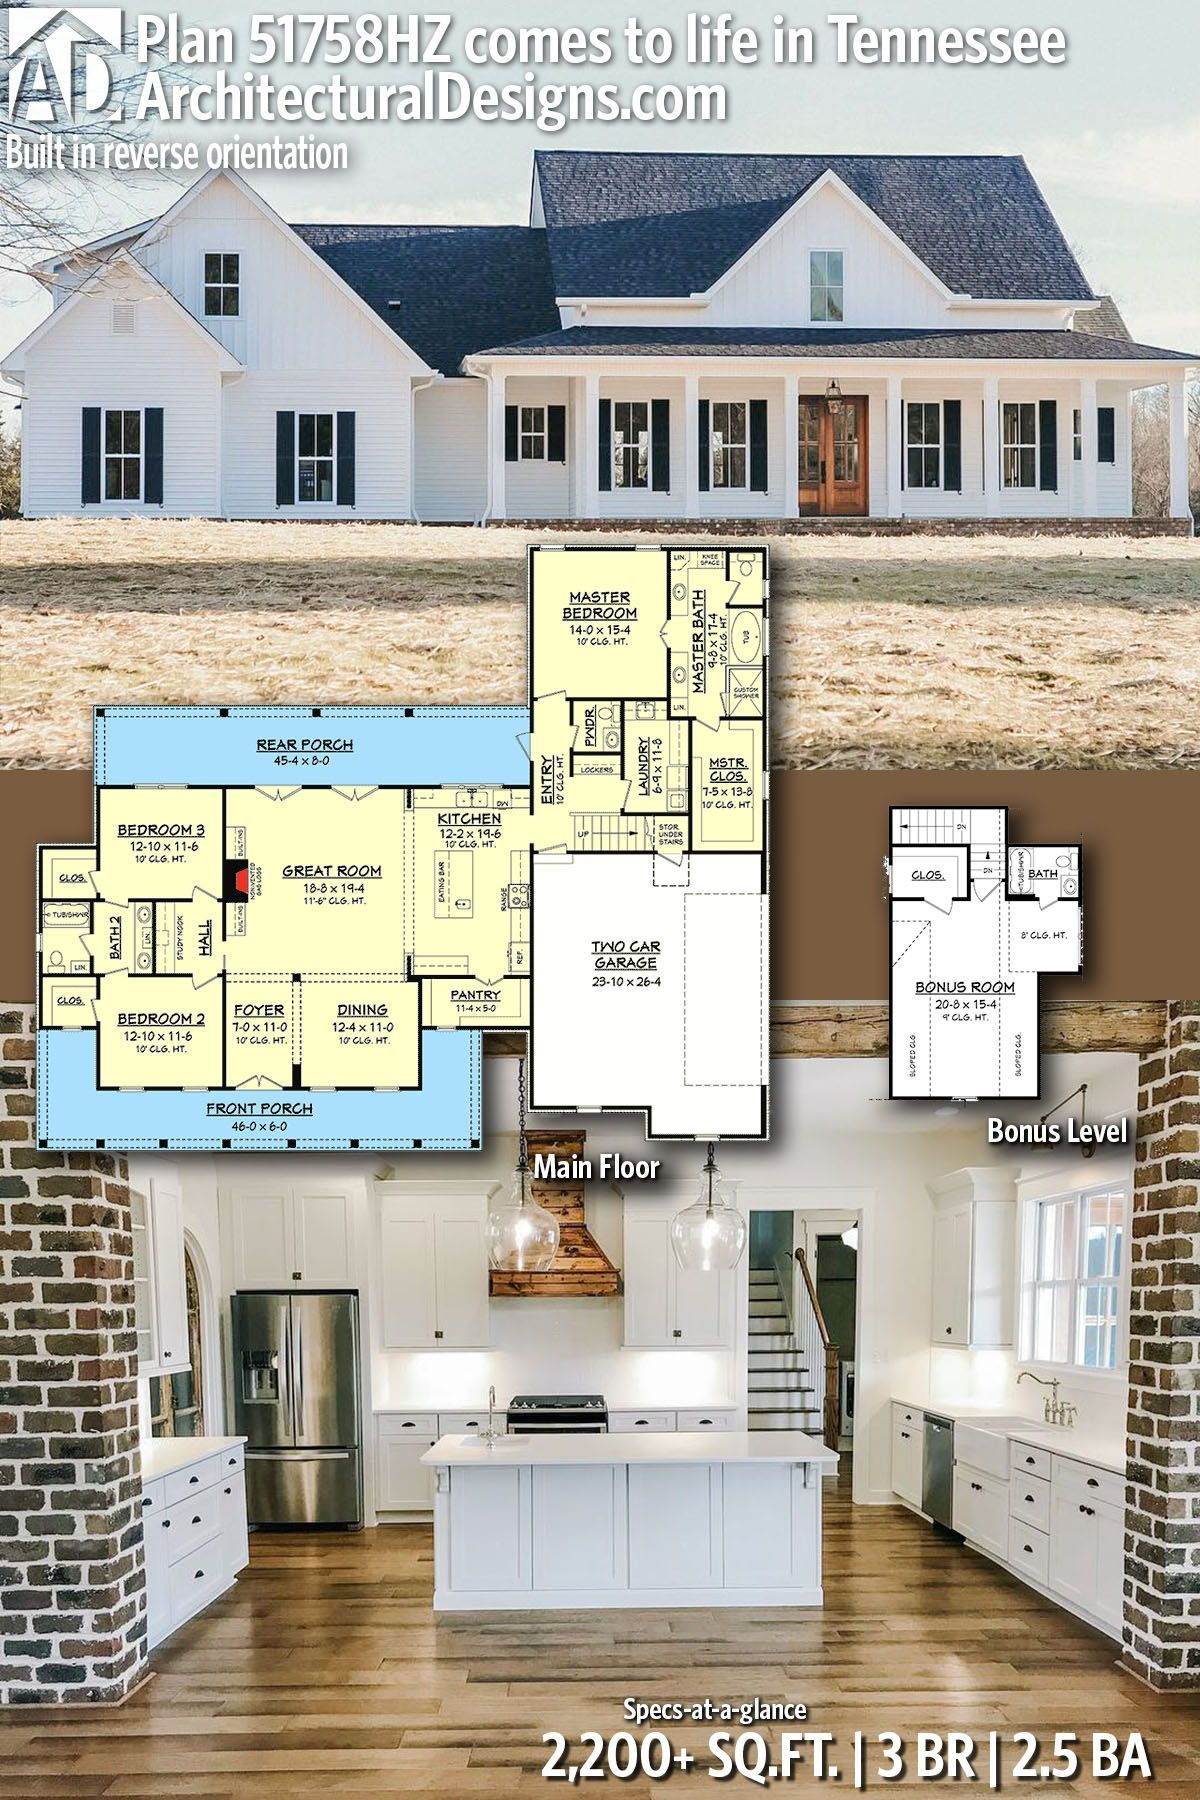 Create A 3rd Bed On The Left Offices In Bonus Room Up Stairs And A Media Game Room Upstairs New House Plans House Plans Farmhouse Dream House Plans